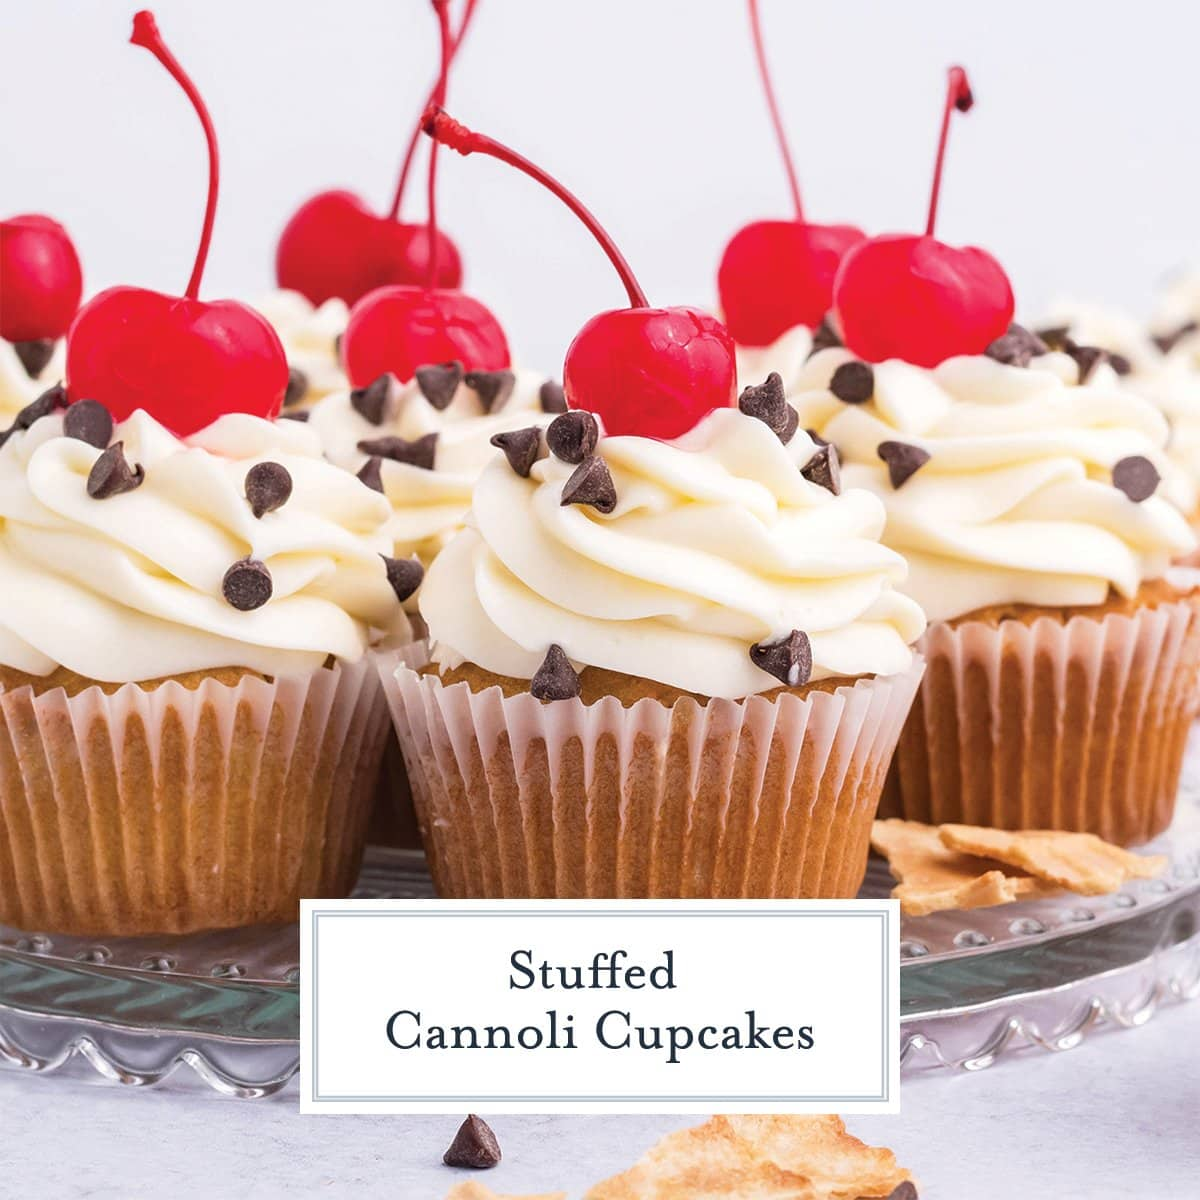 close up of cannoli cupcakes with chocolate chips and a cherry